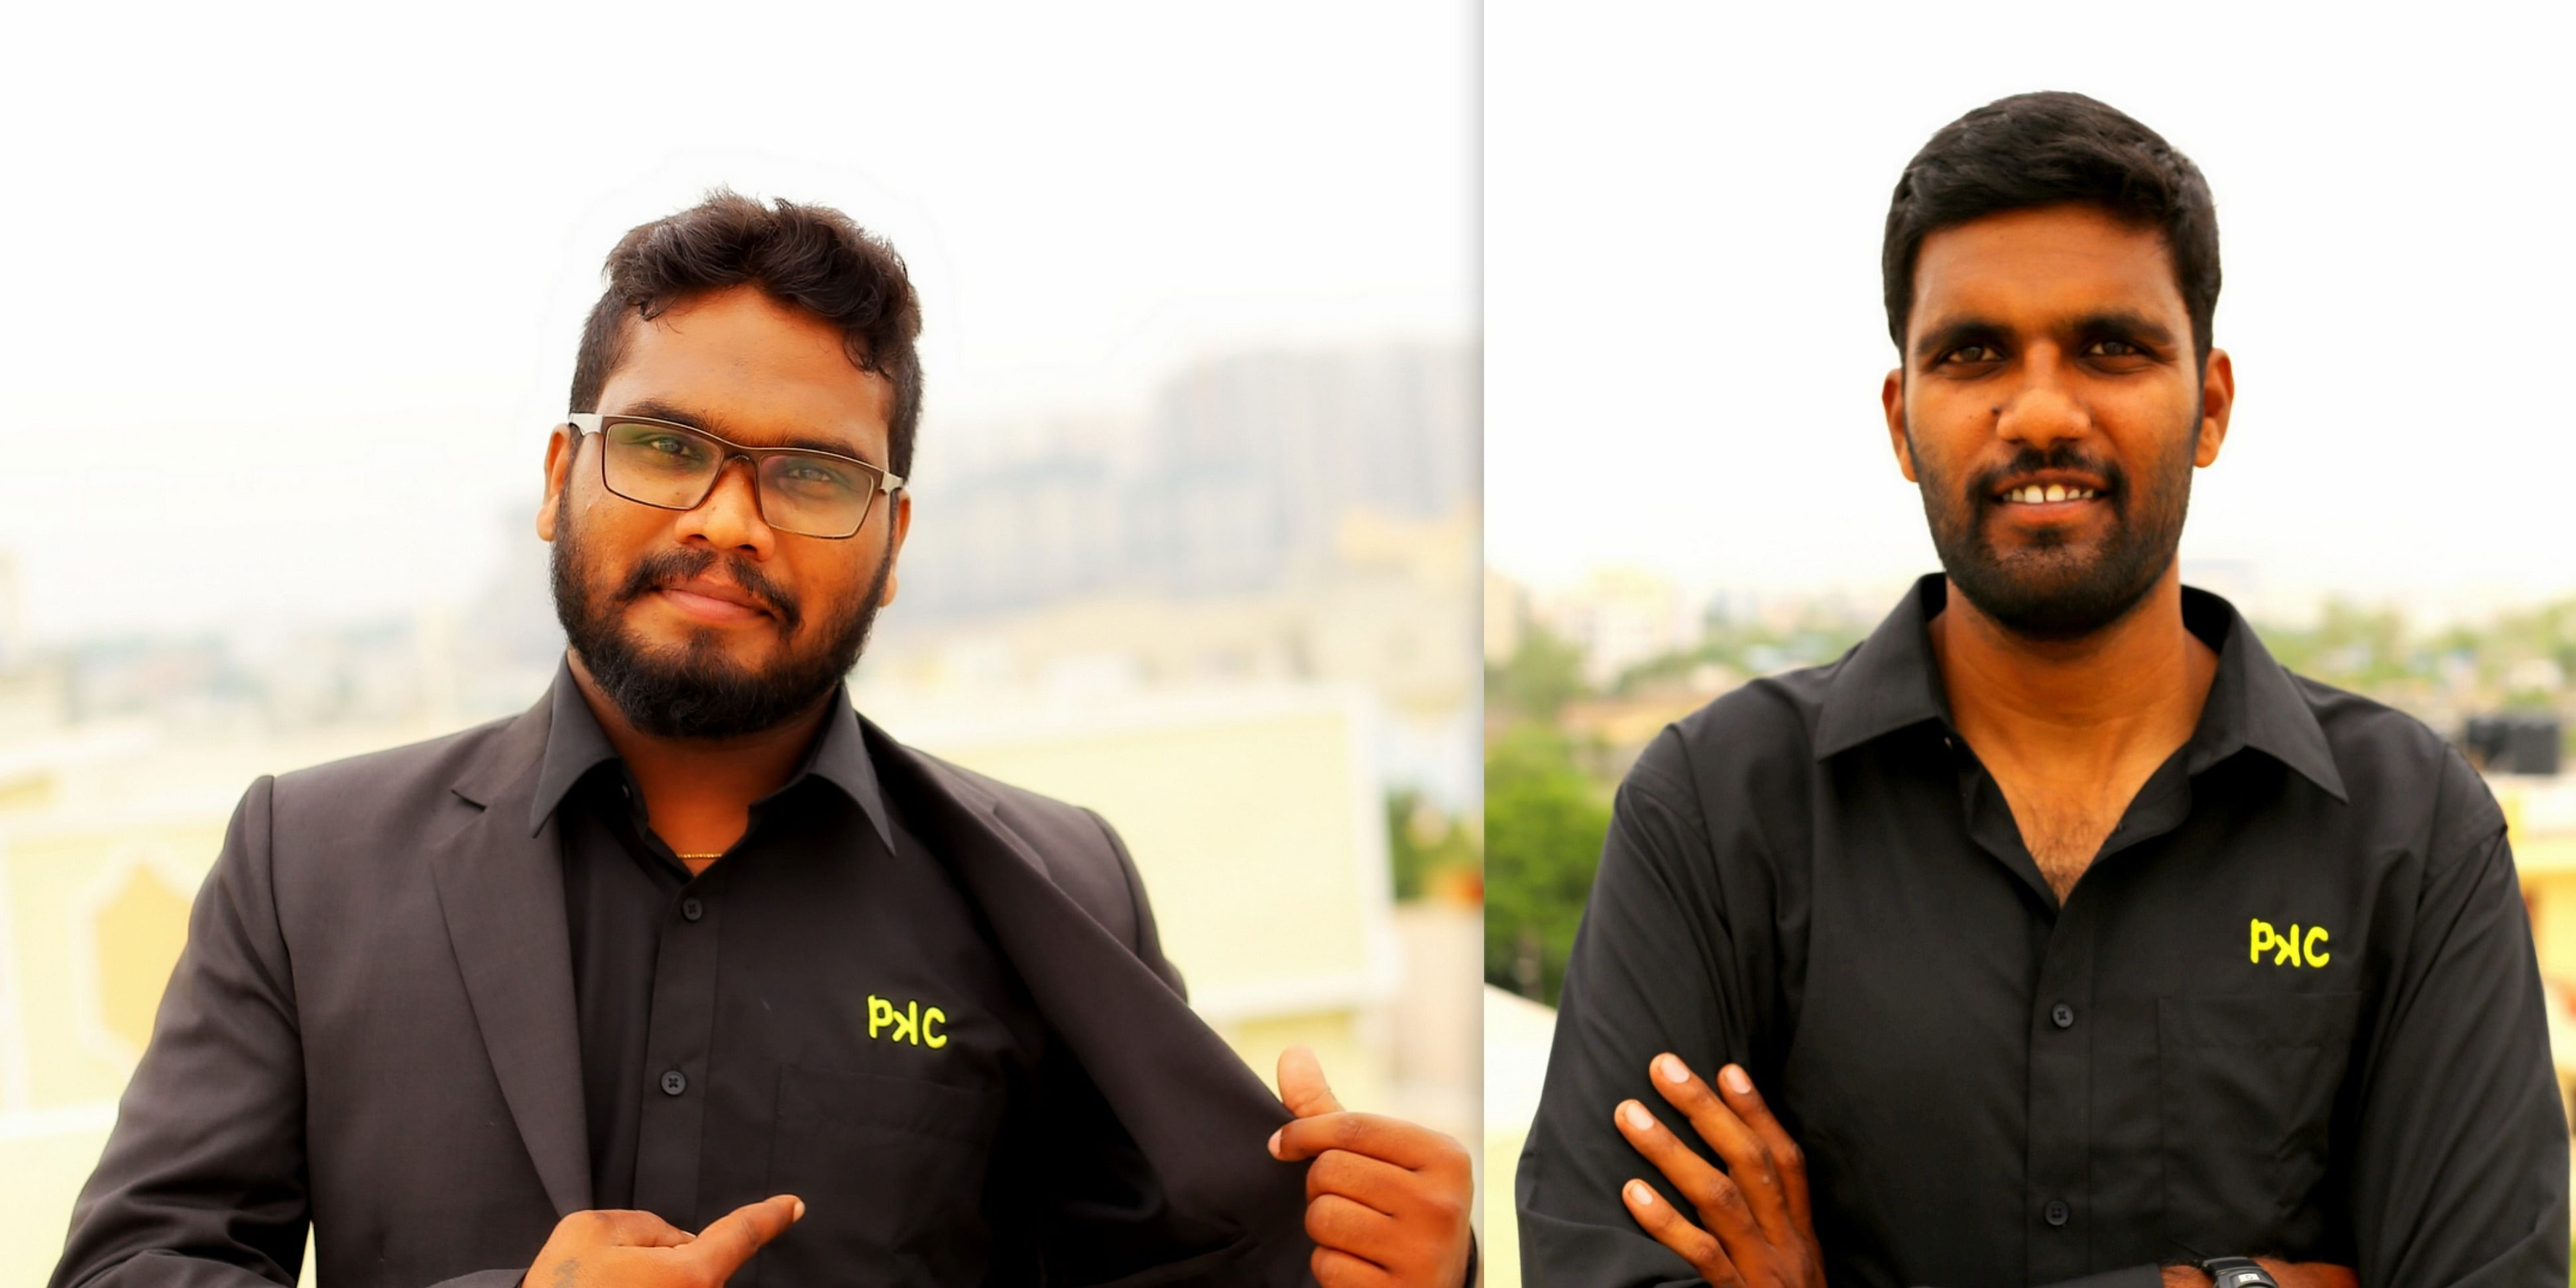 PKC(Premanth Kundurthi, Chaithanya) founders. In other sense, PKC- Perfect Klinic for Clothes